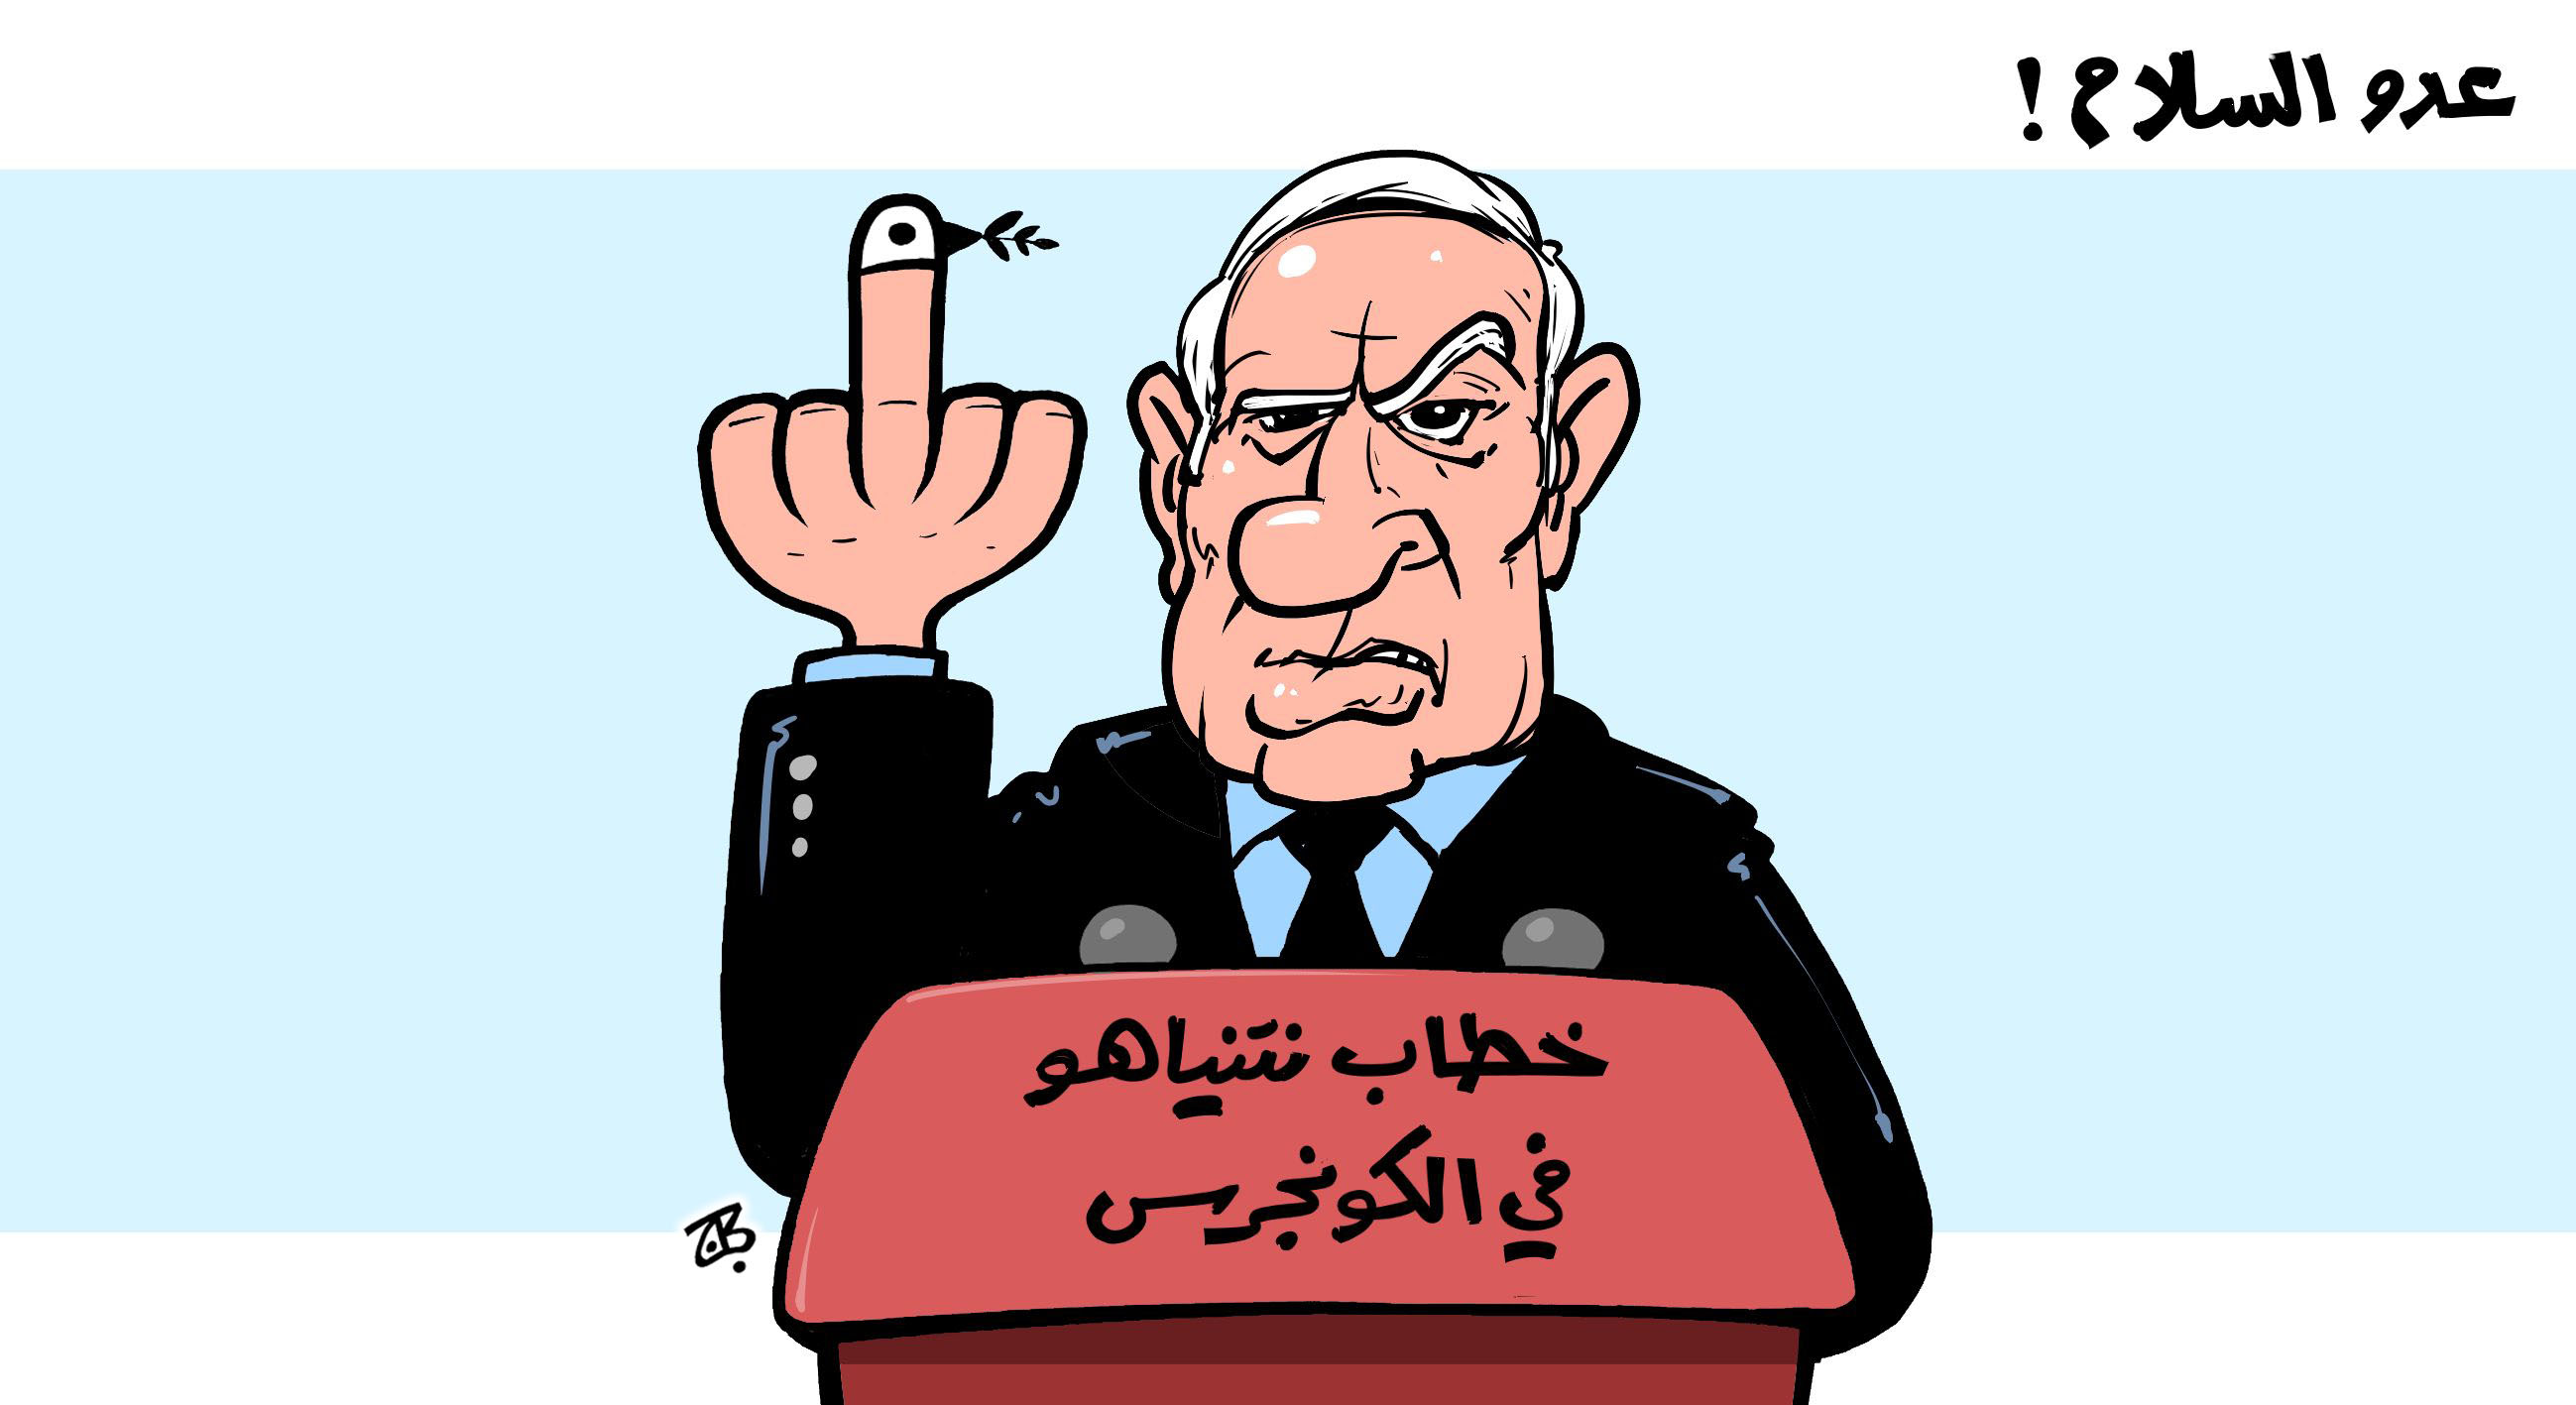 nitinyaho speech in congress usa israel iran enemy of peace dove finger hanookah 15-05-04